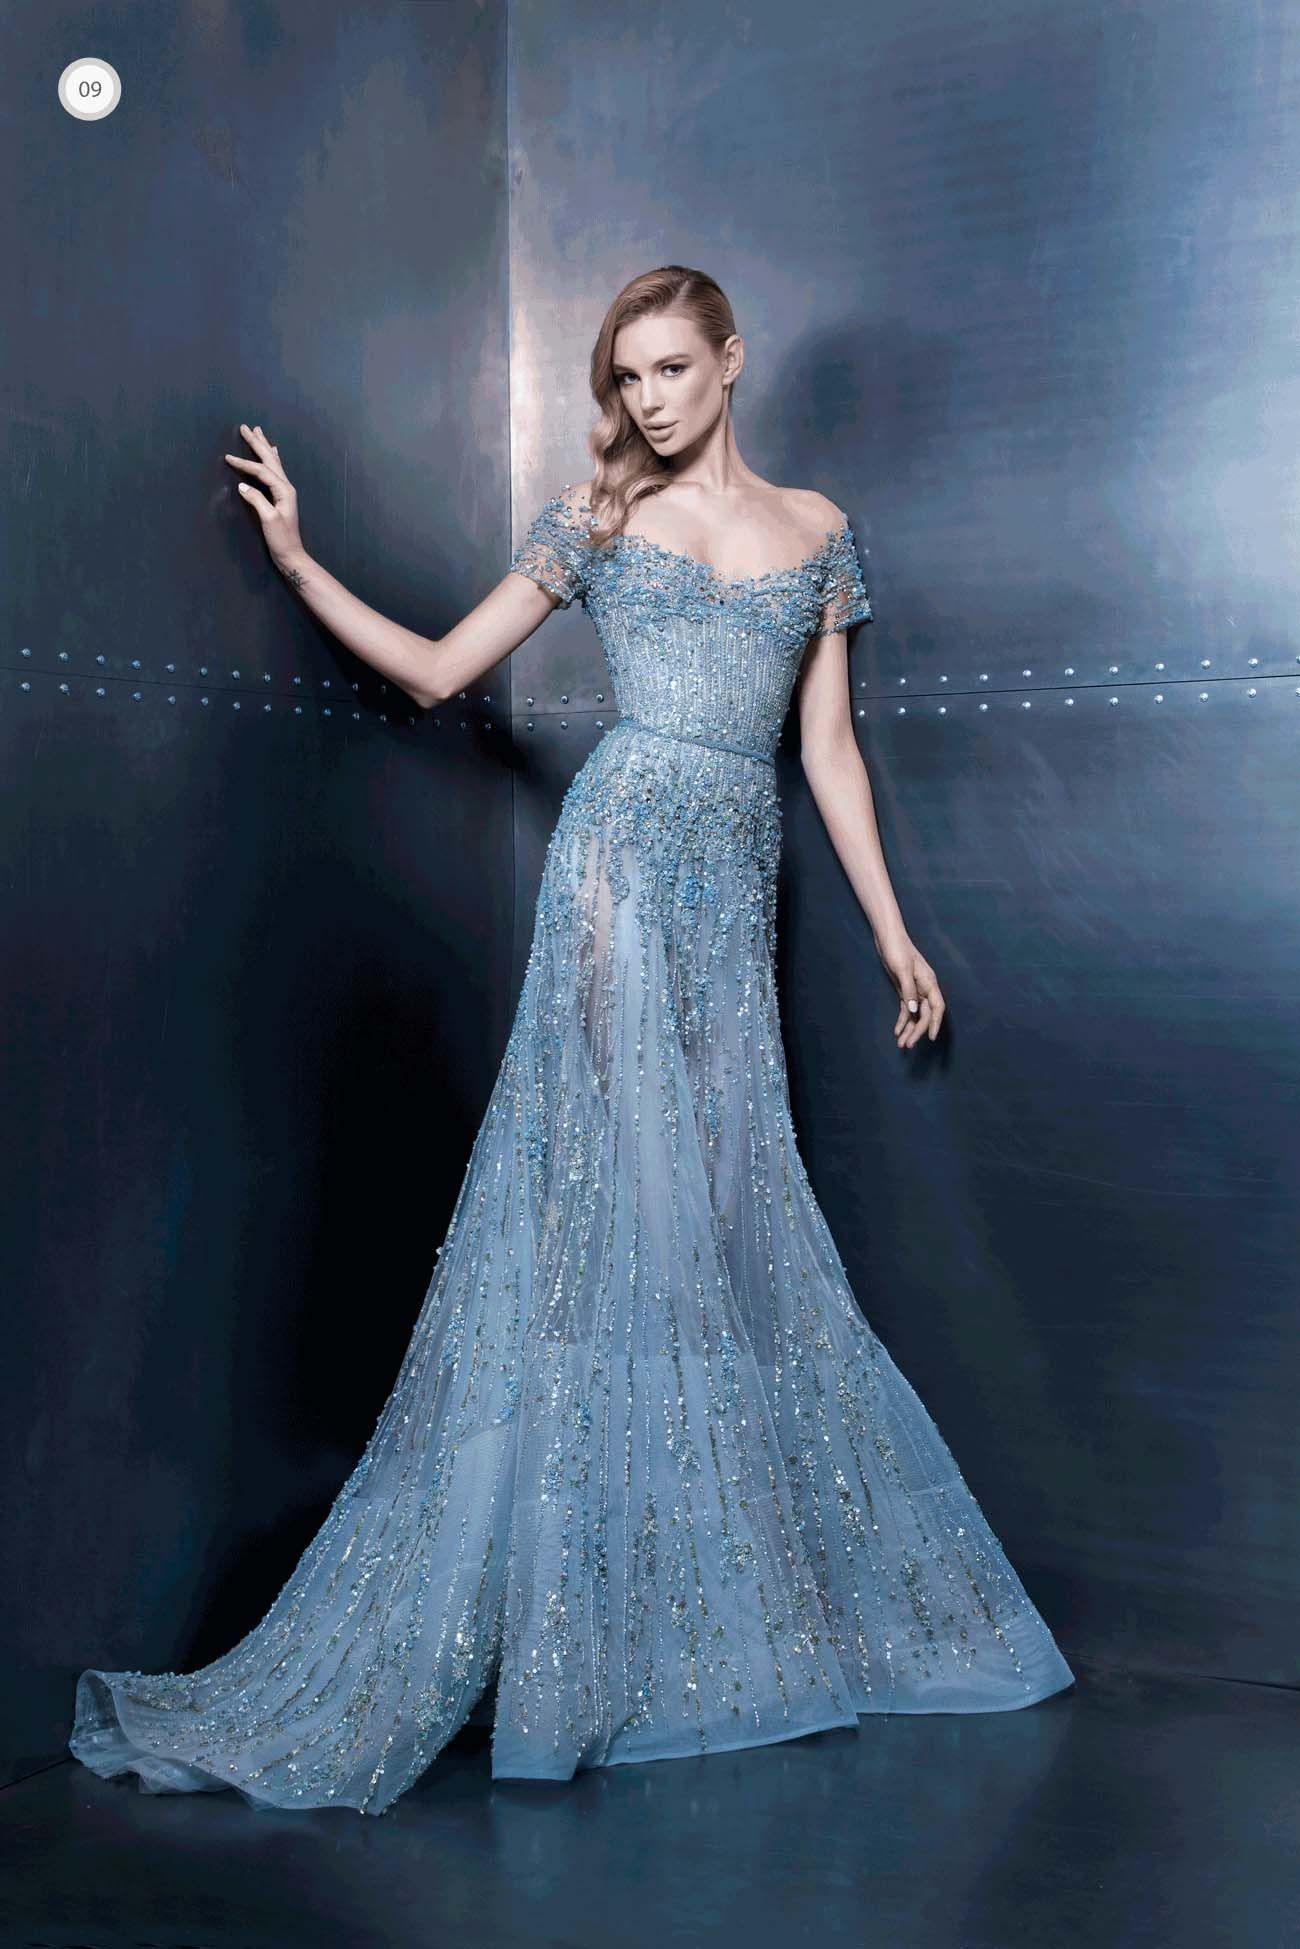 Ziad nakad runaway fashion my picks pinterest gowns couture